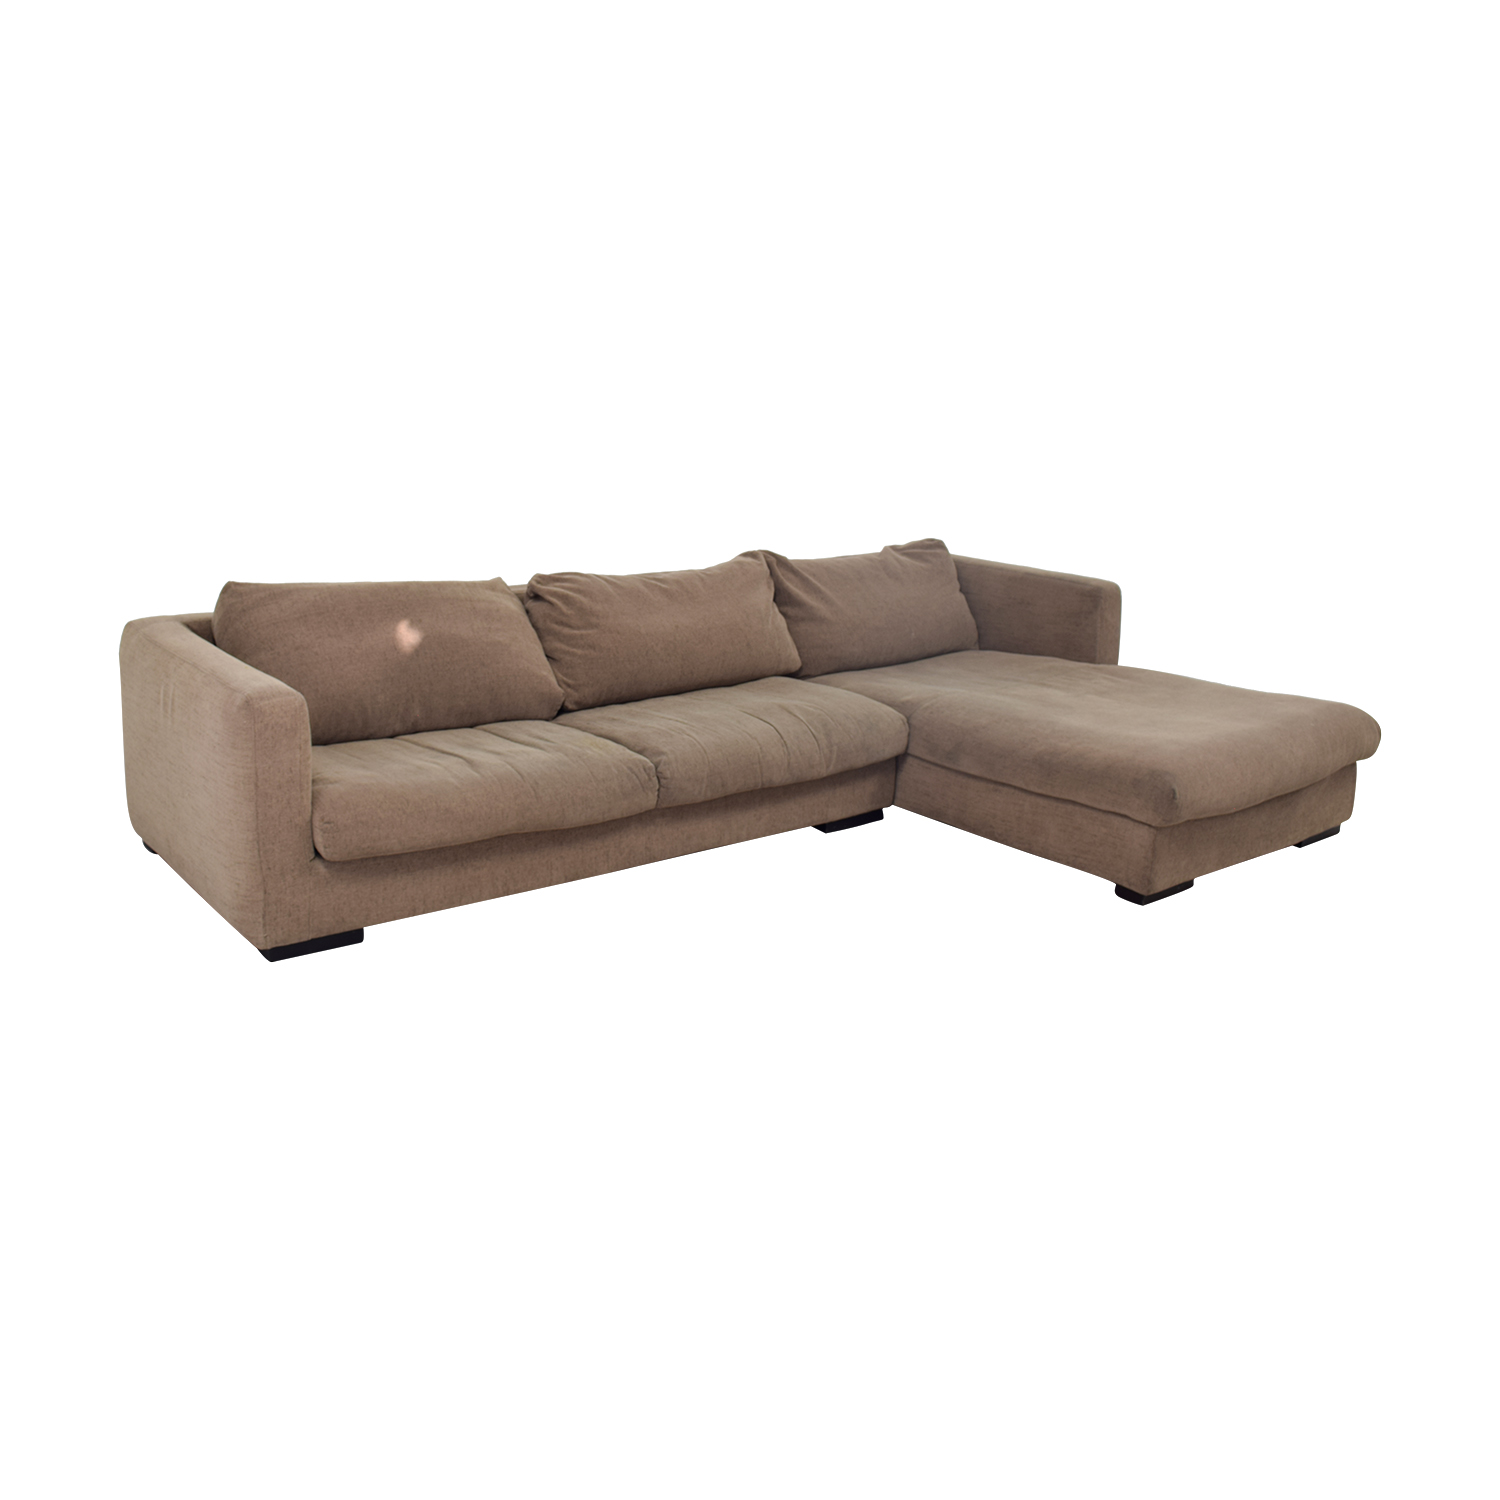 shop Plummers Furniture Tan Down Feather Chaise Sectional Plummers Furniture Sectionals